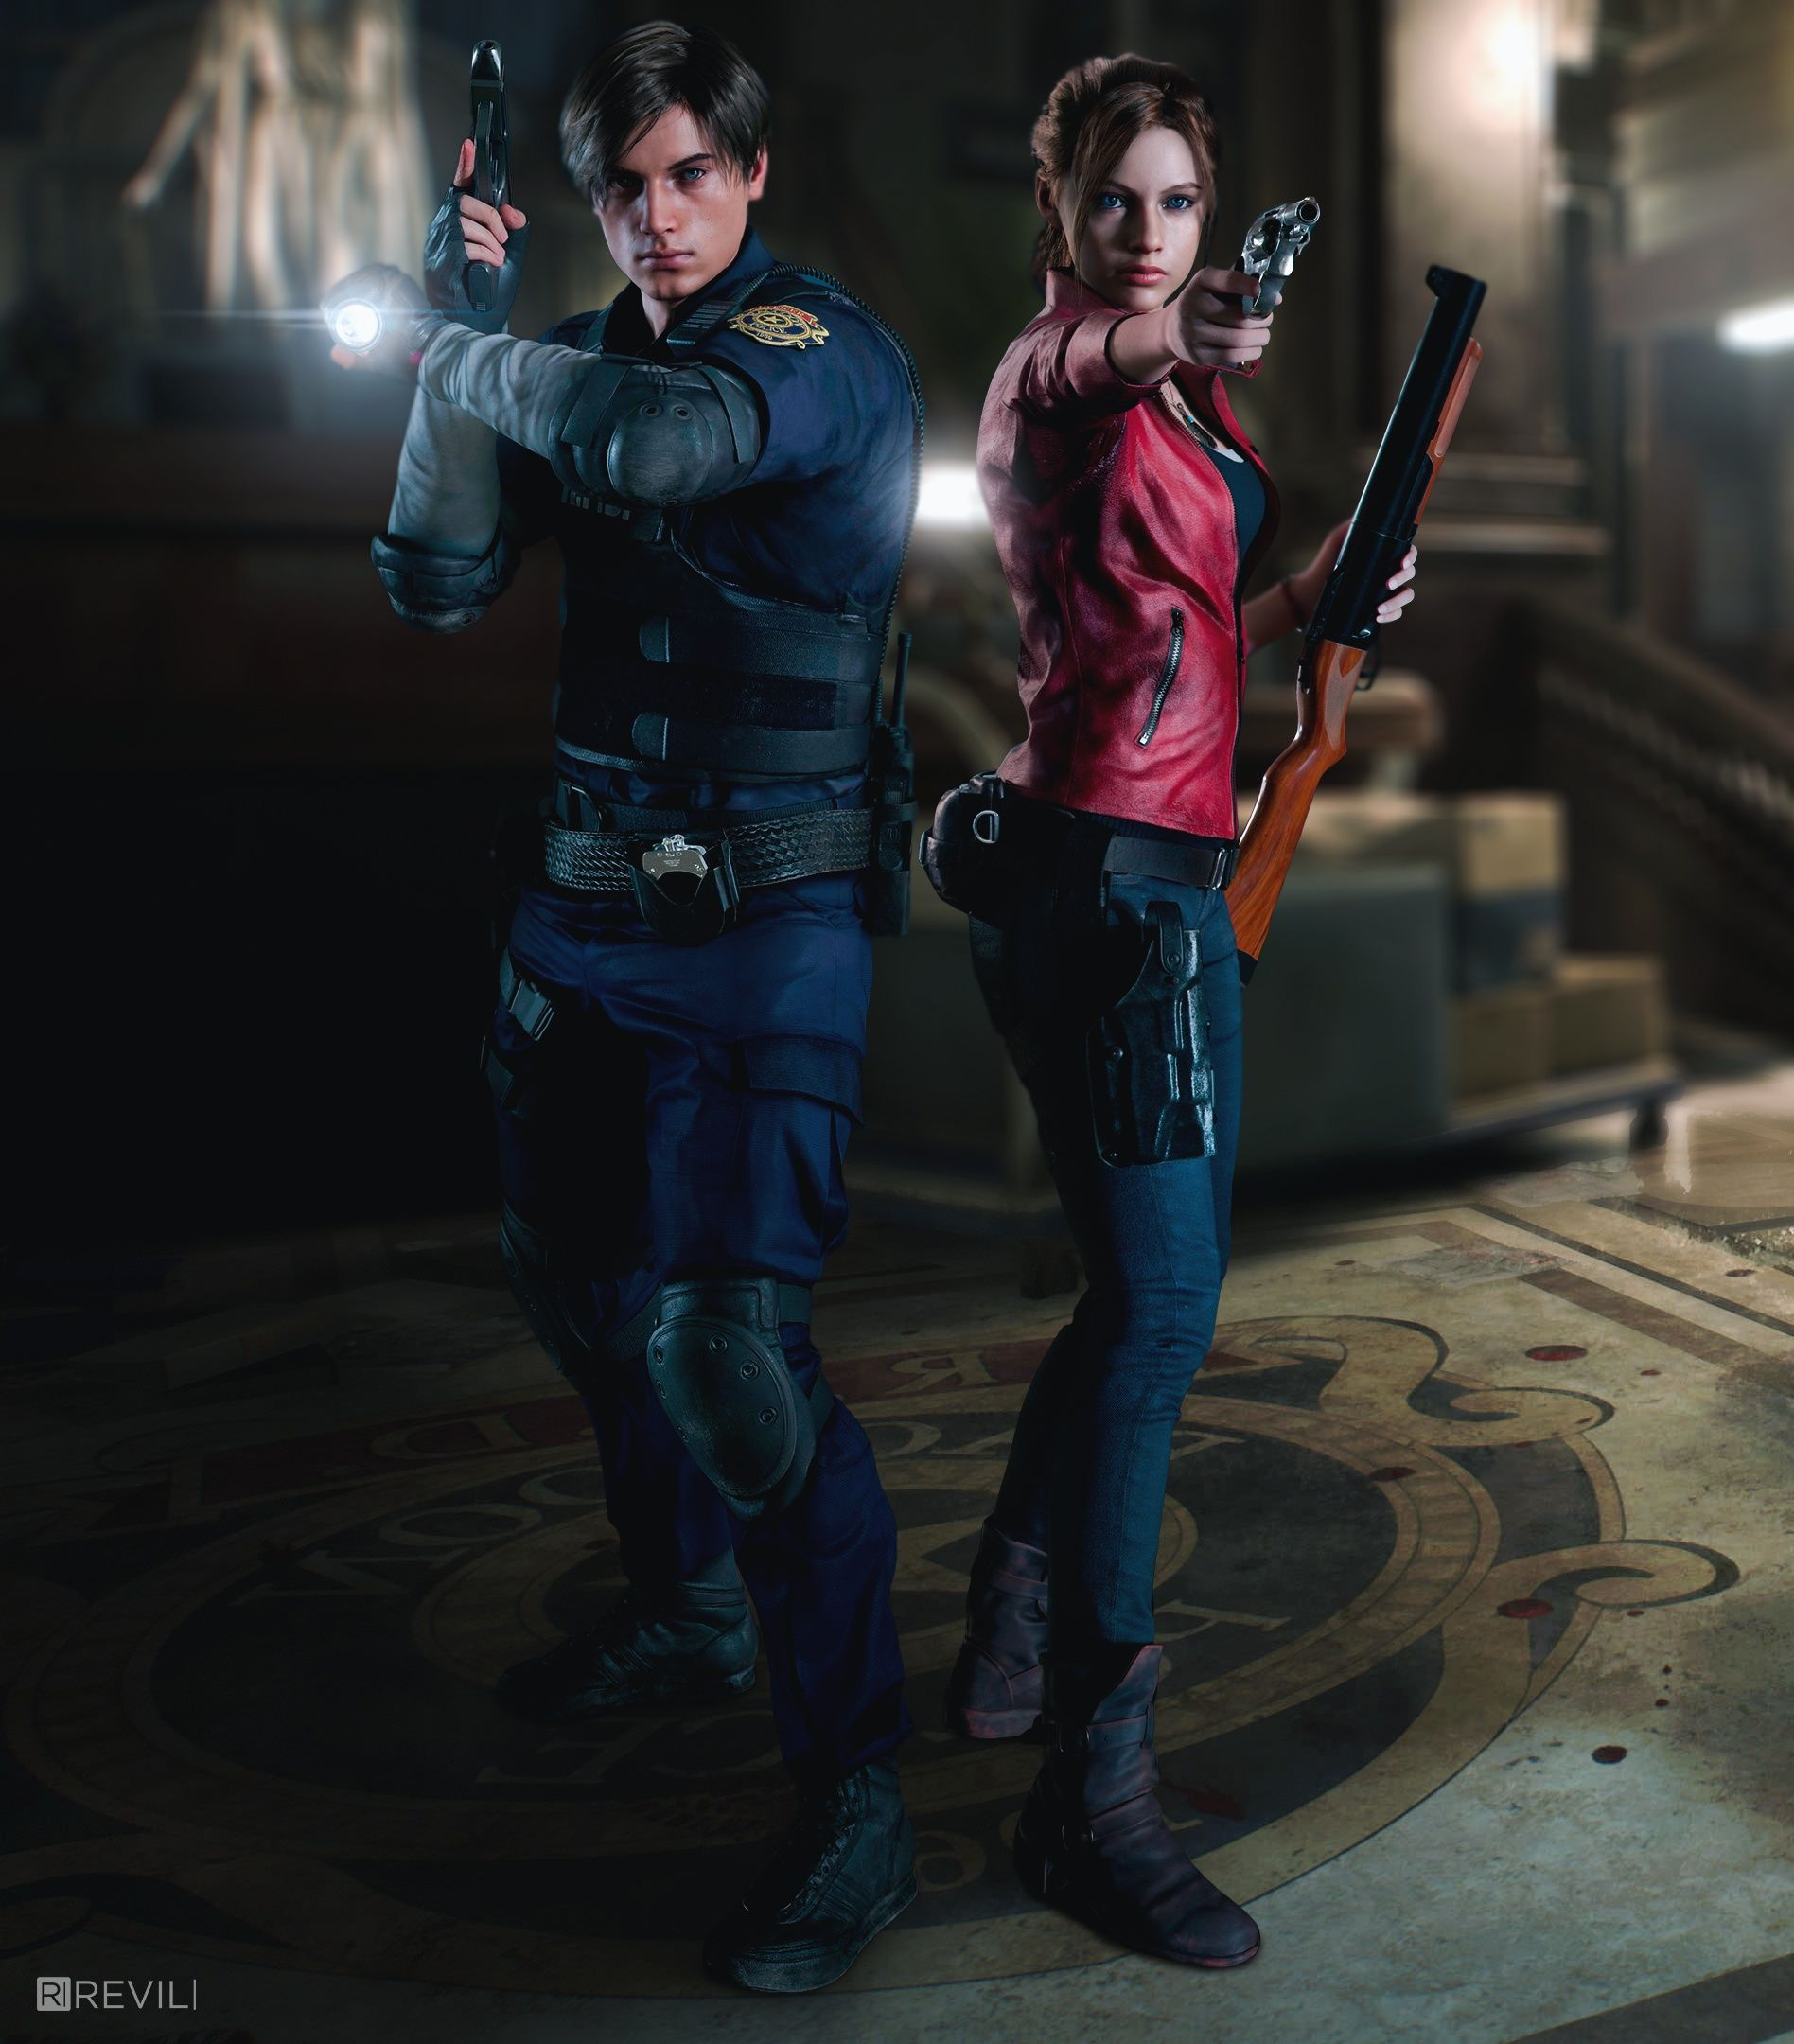 Wallpaper 4k Resident Evil 2 Remake Resident Evil Leon Resident Evil Resident Evil Collection